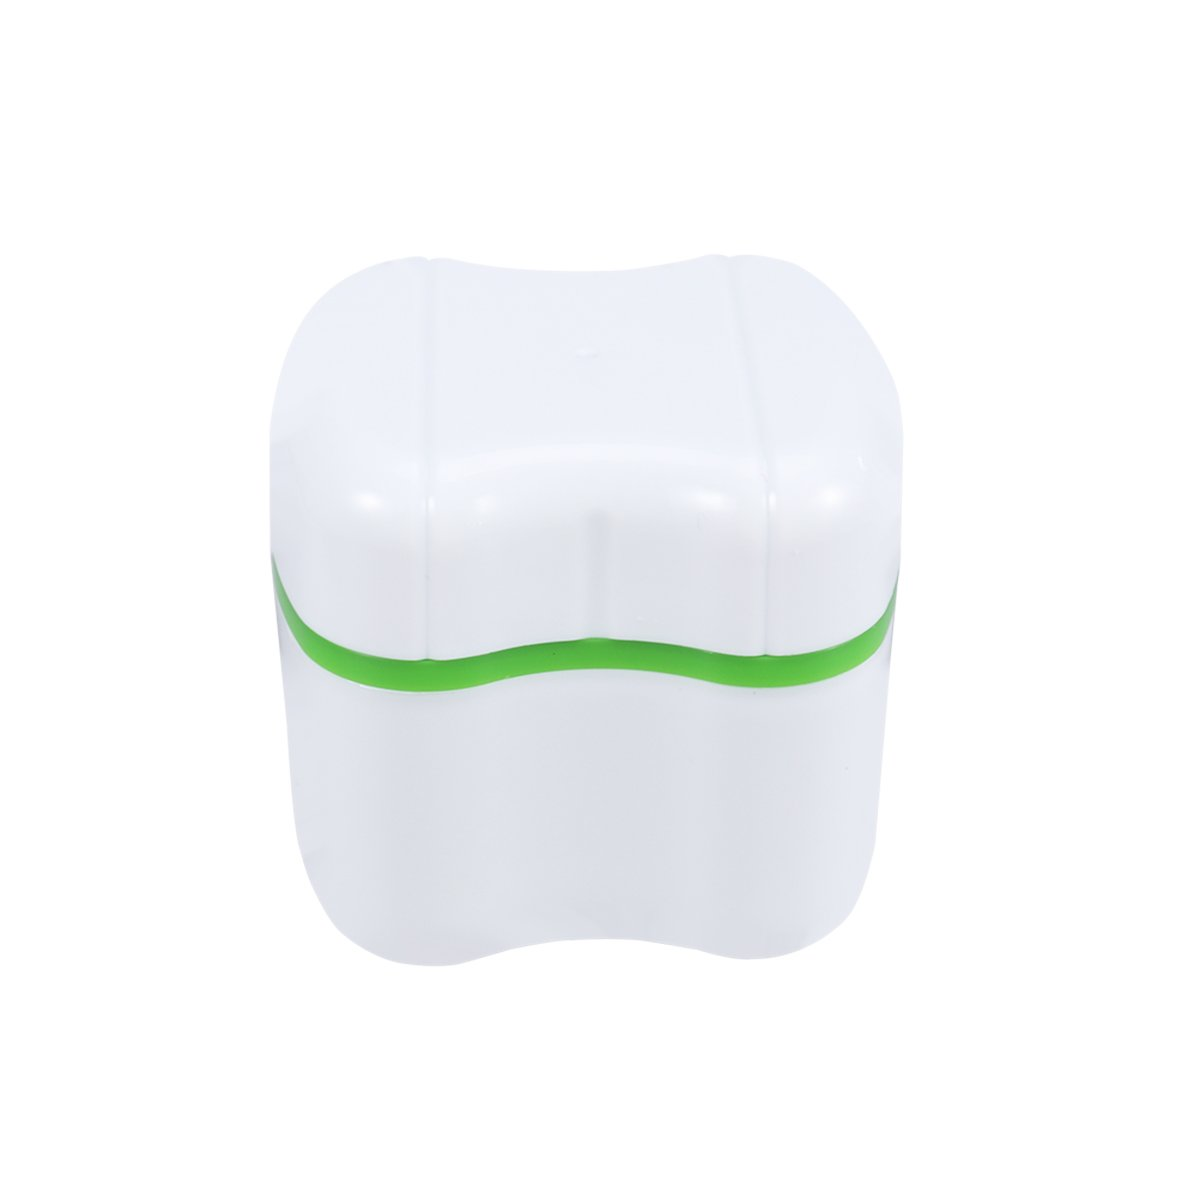 ROSENICE Denture Bath Box False Teeth Storage Container Case with Rinsing Basket (Green)